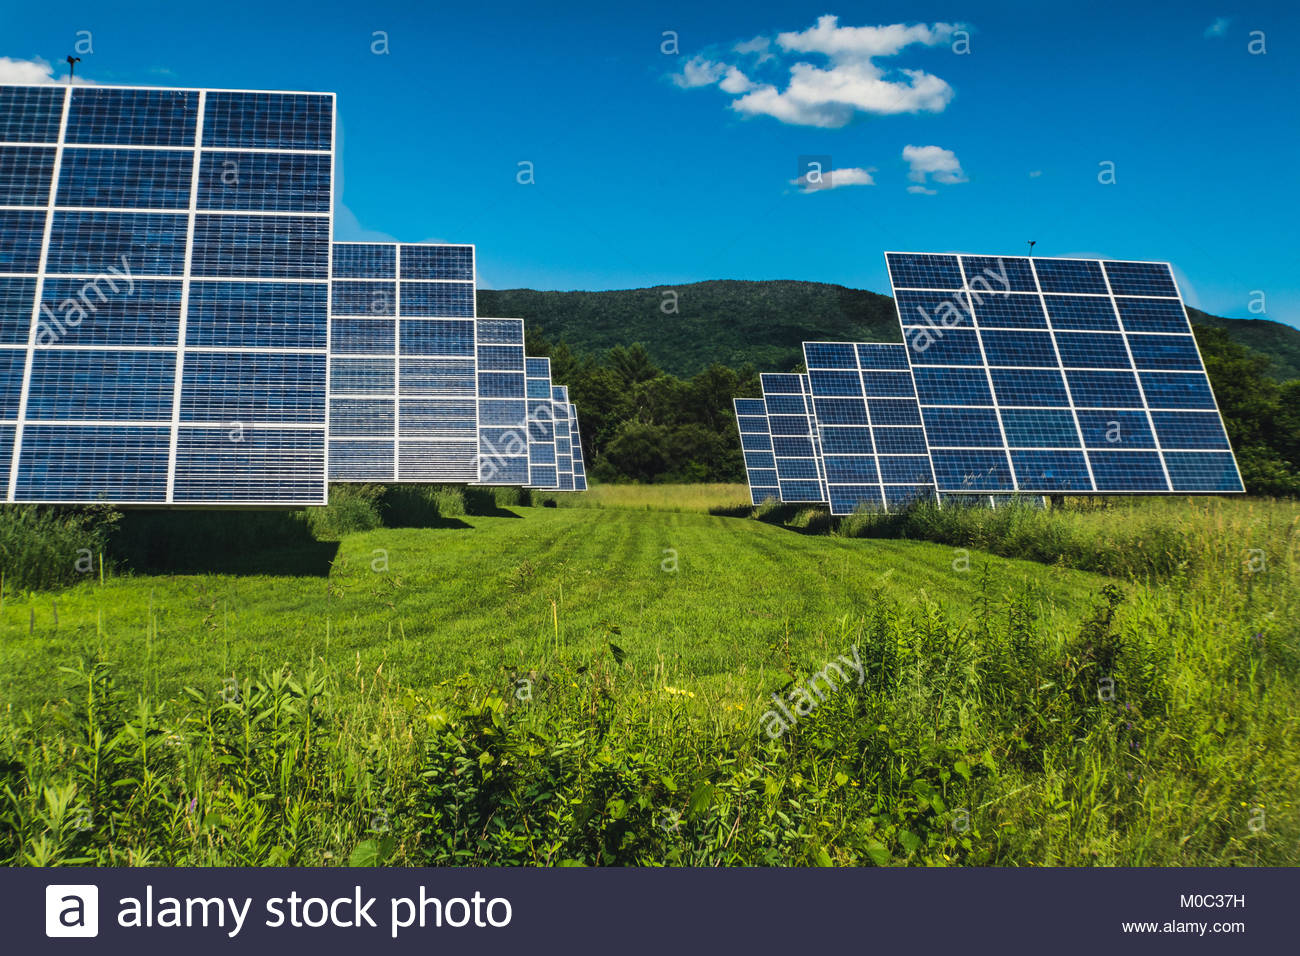 Up close in a field of solar panels. - Stock Image